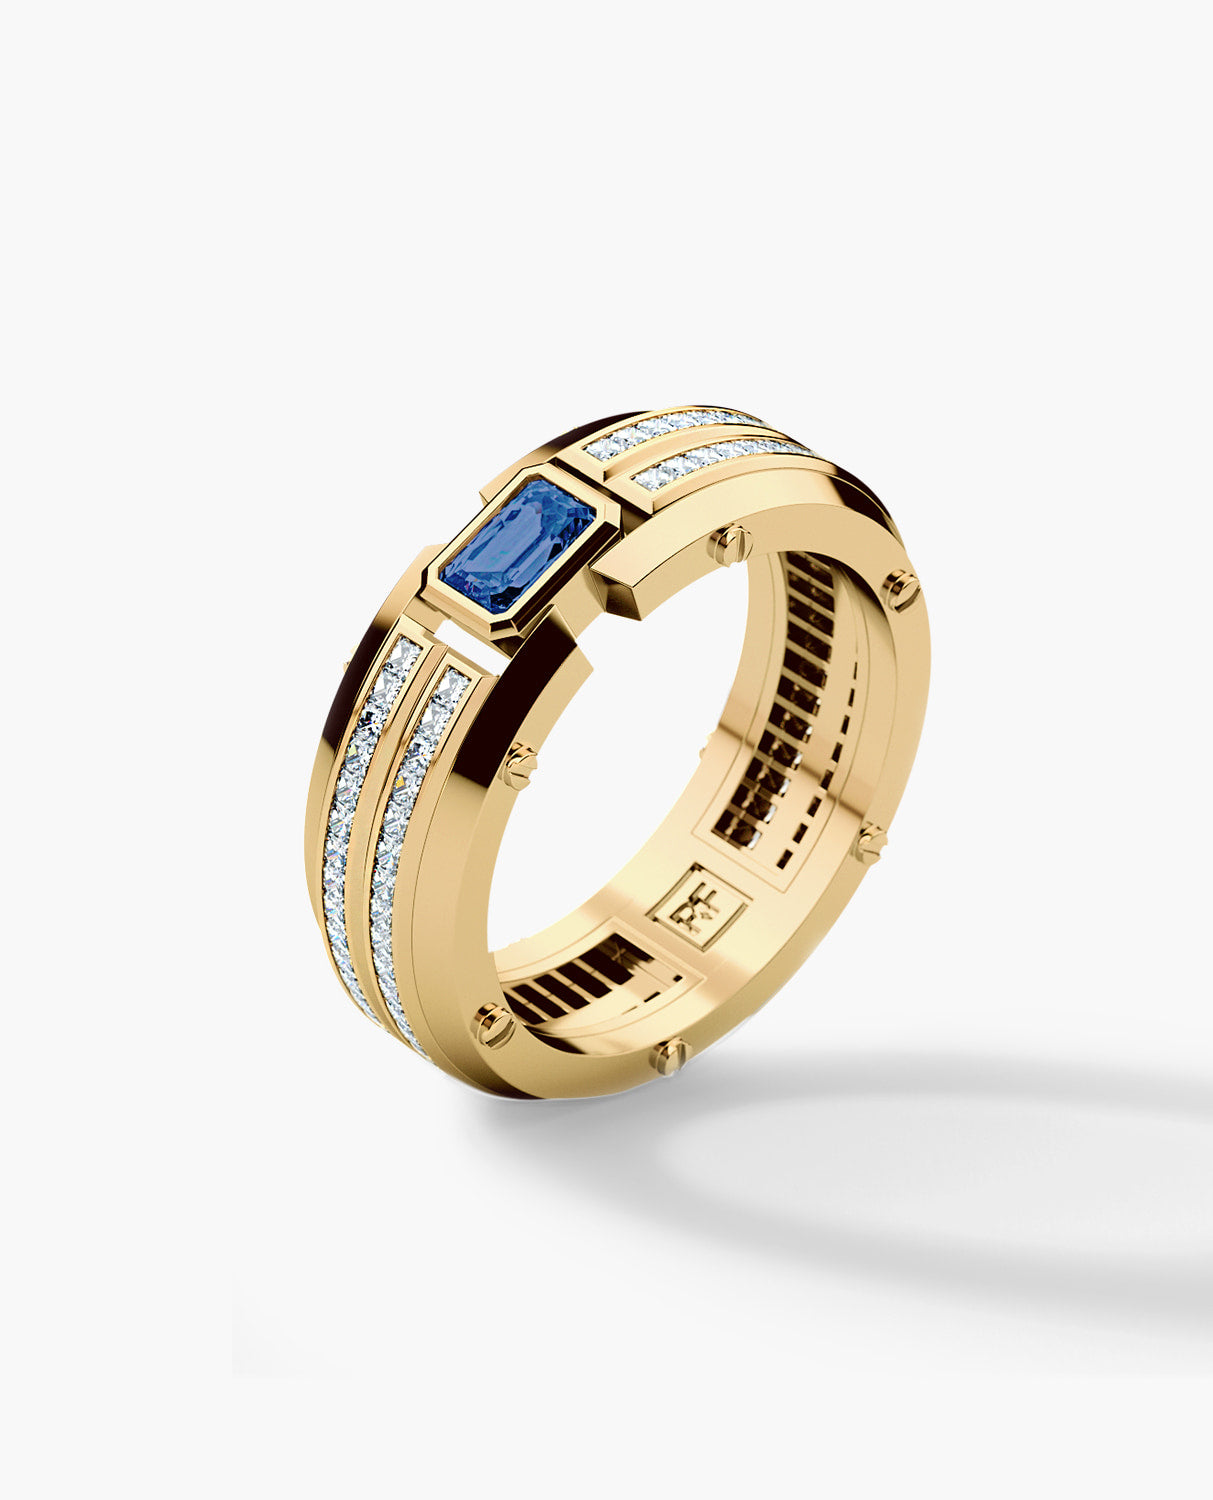 CLEBURNE Mens Gold Wedding Band with 2.20ct Sapphire and Diamonds